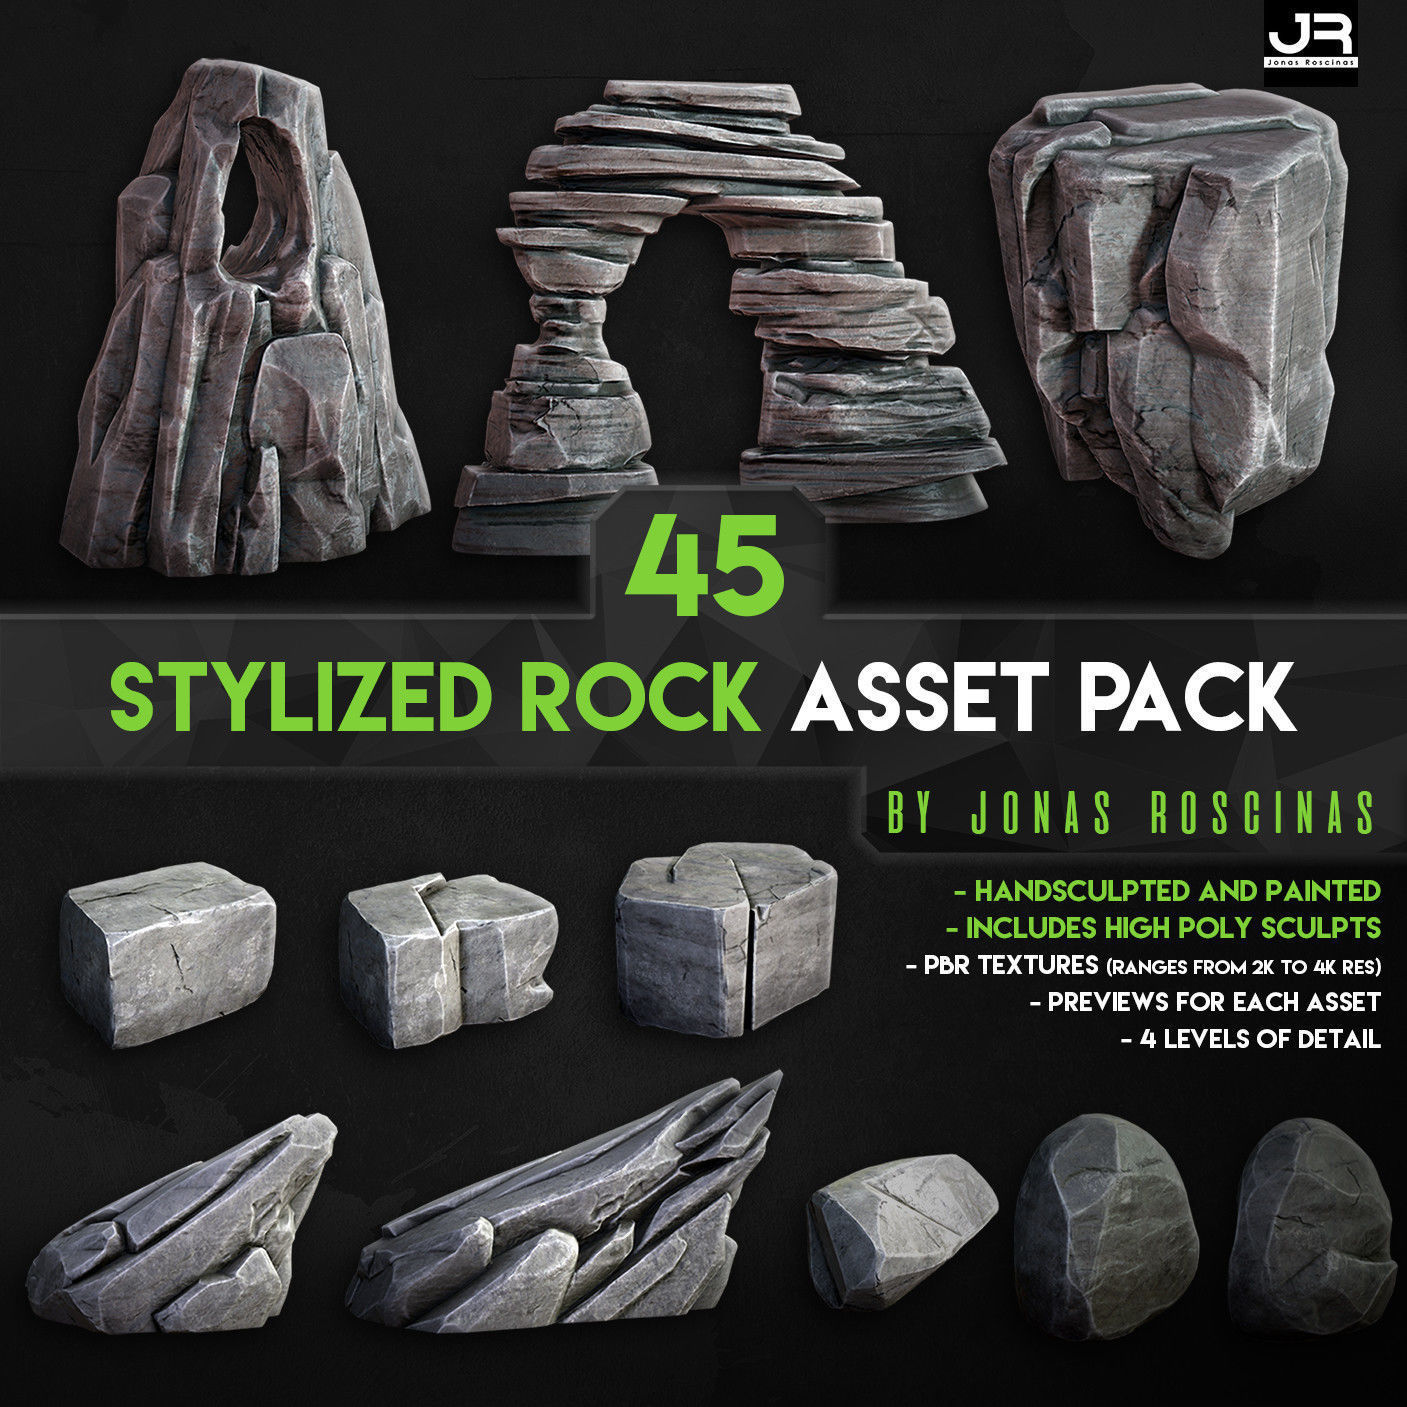 Stylized Rock Asset Pack by J Roscinas